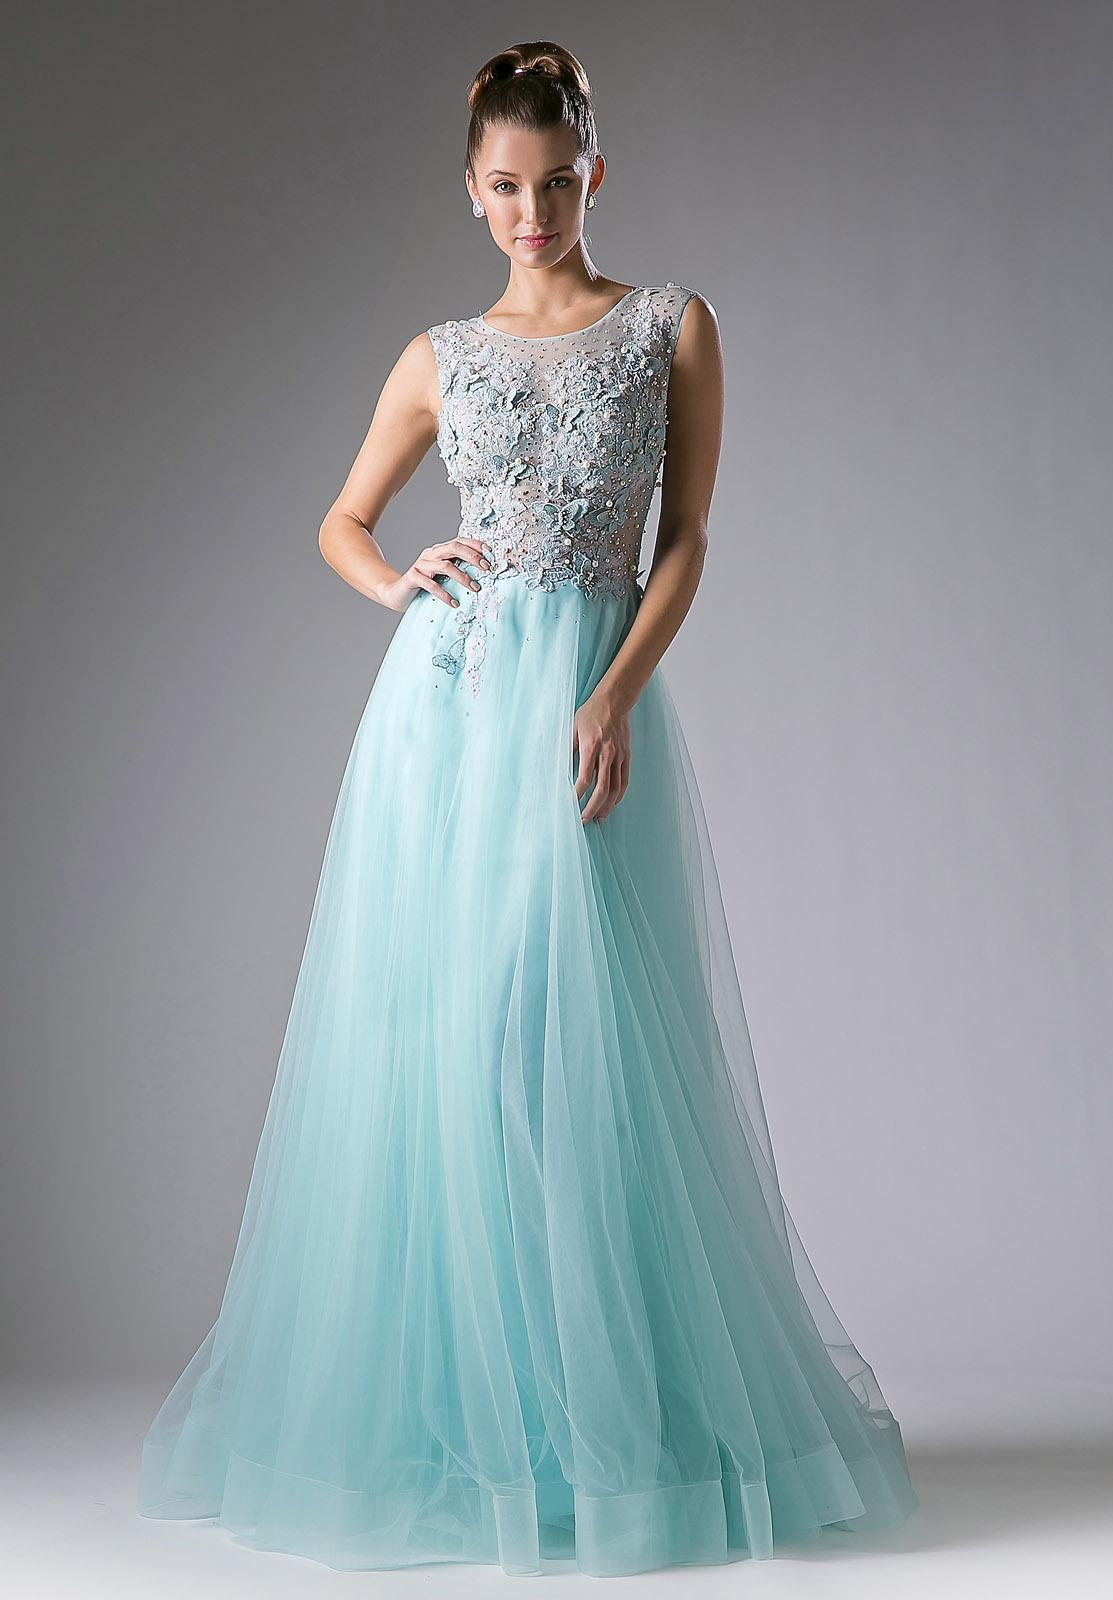 A-line Appliqued Bodice Sleeveless Prom Gown Illusion Back Light ...